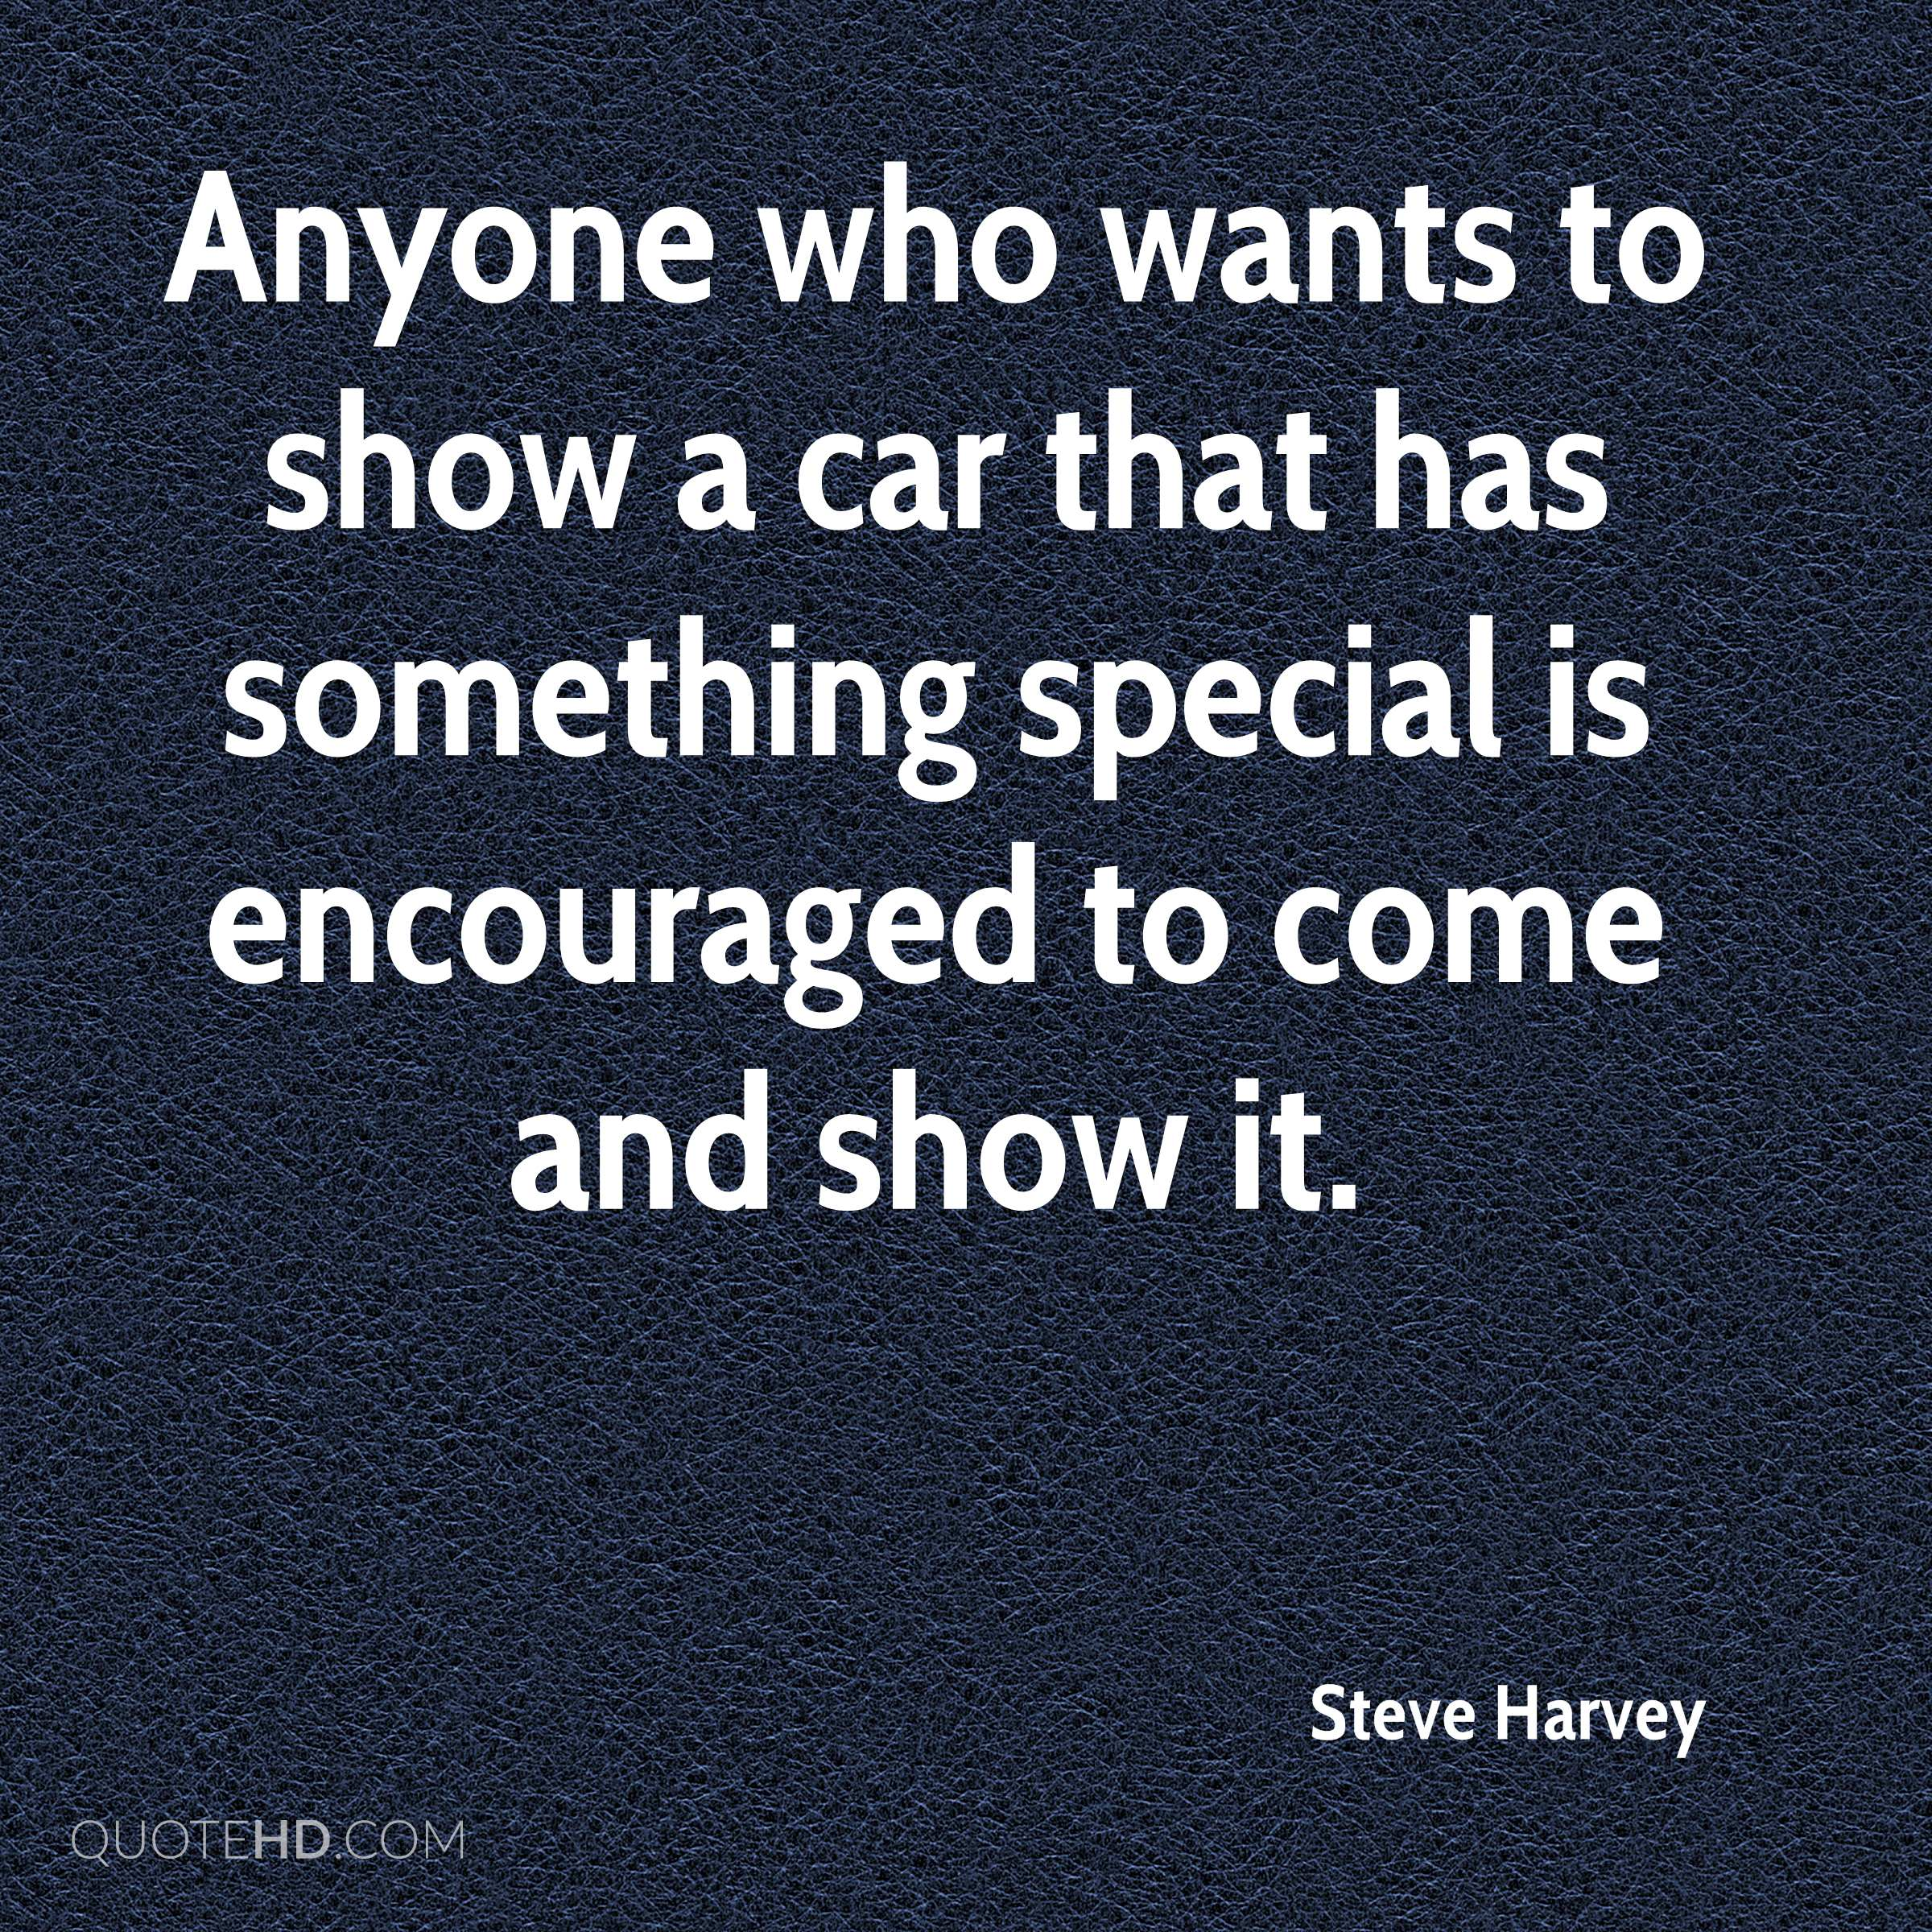 Anyone who wants to show a car that has something special is encouraged to come and show it.